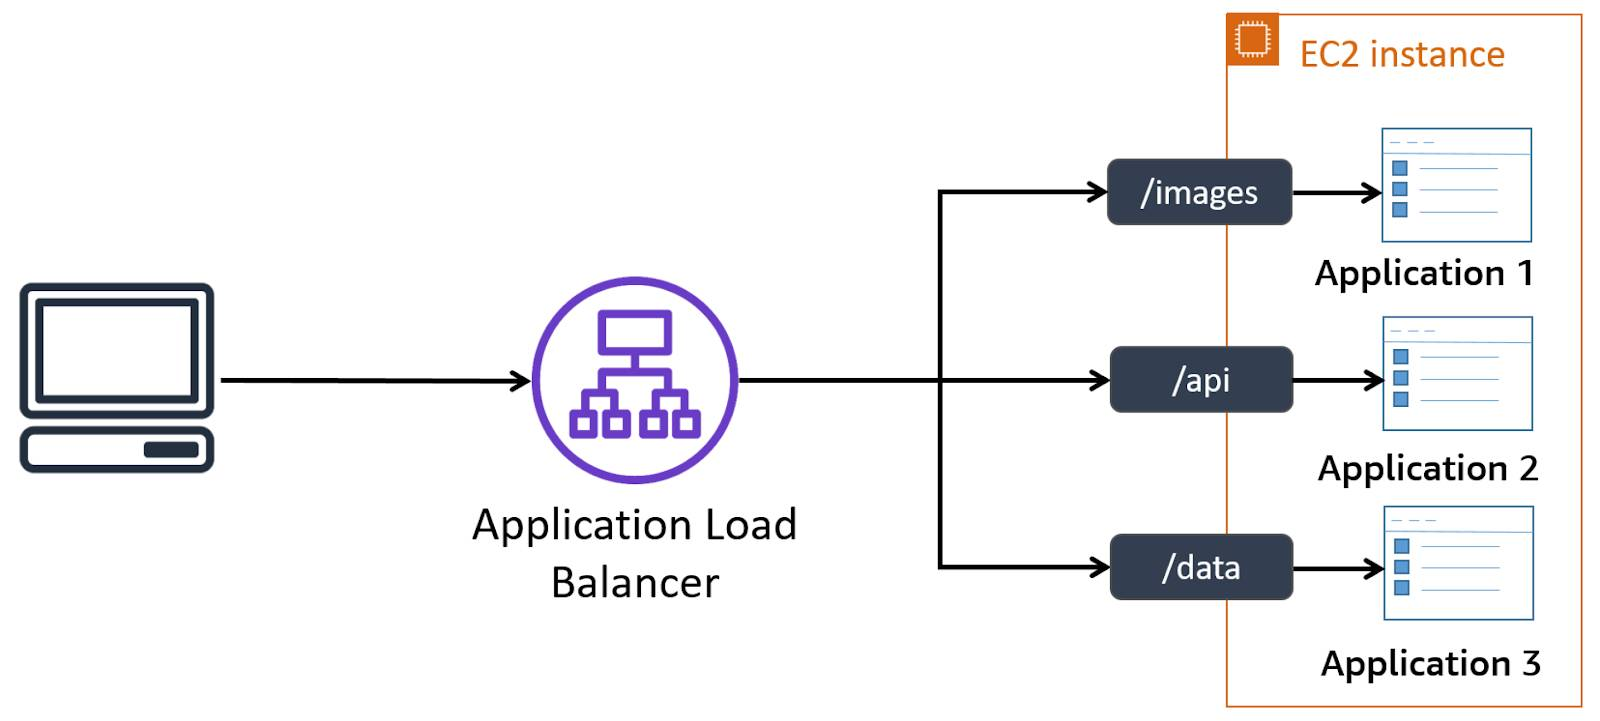 Computer connecting to Application Load Balancer and splitting into three streams connecting images, API, and data to three applications within an EC2 instance